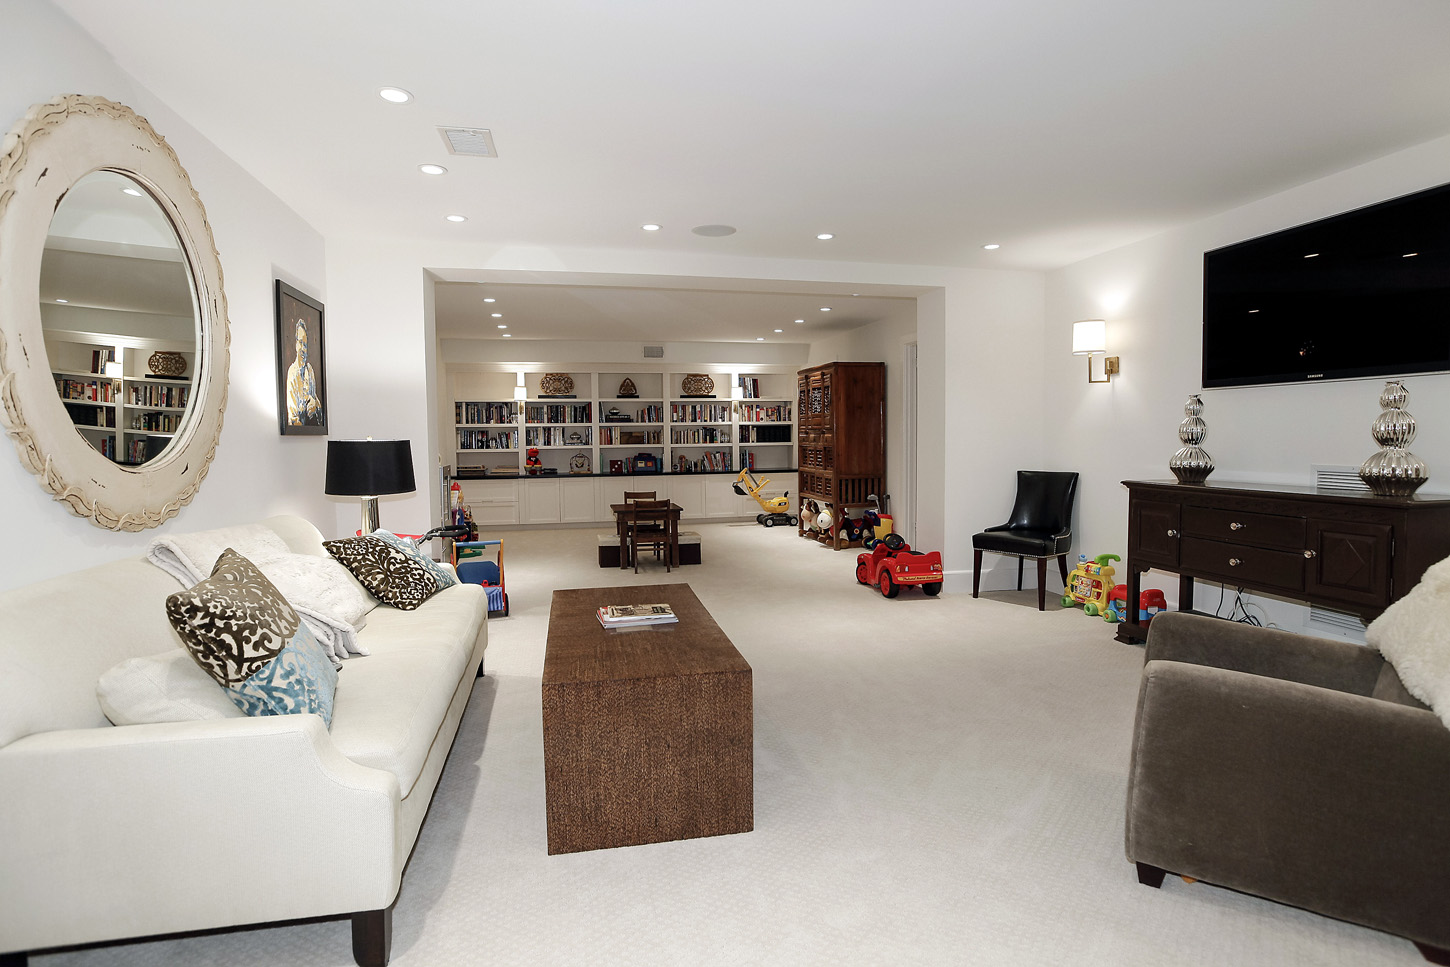 A media/family room in the Obamas' new house, in the Kalorama area of Northwest D.C. (Courtesy McFadden Group)